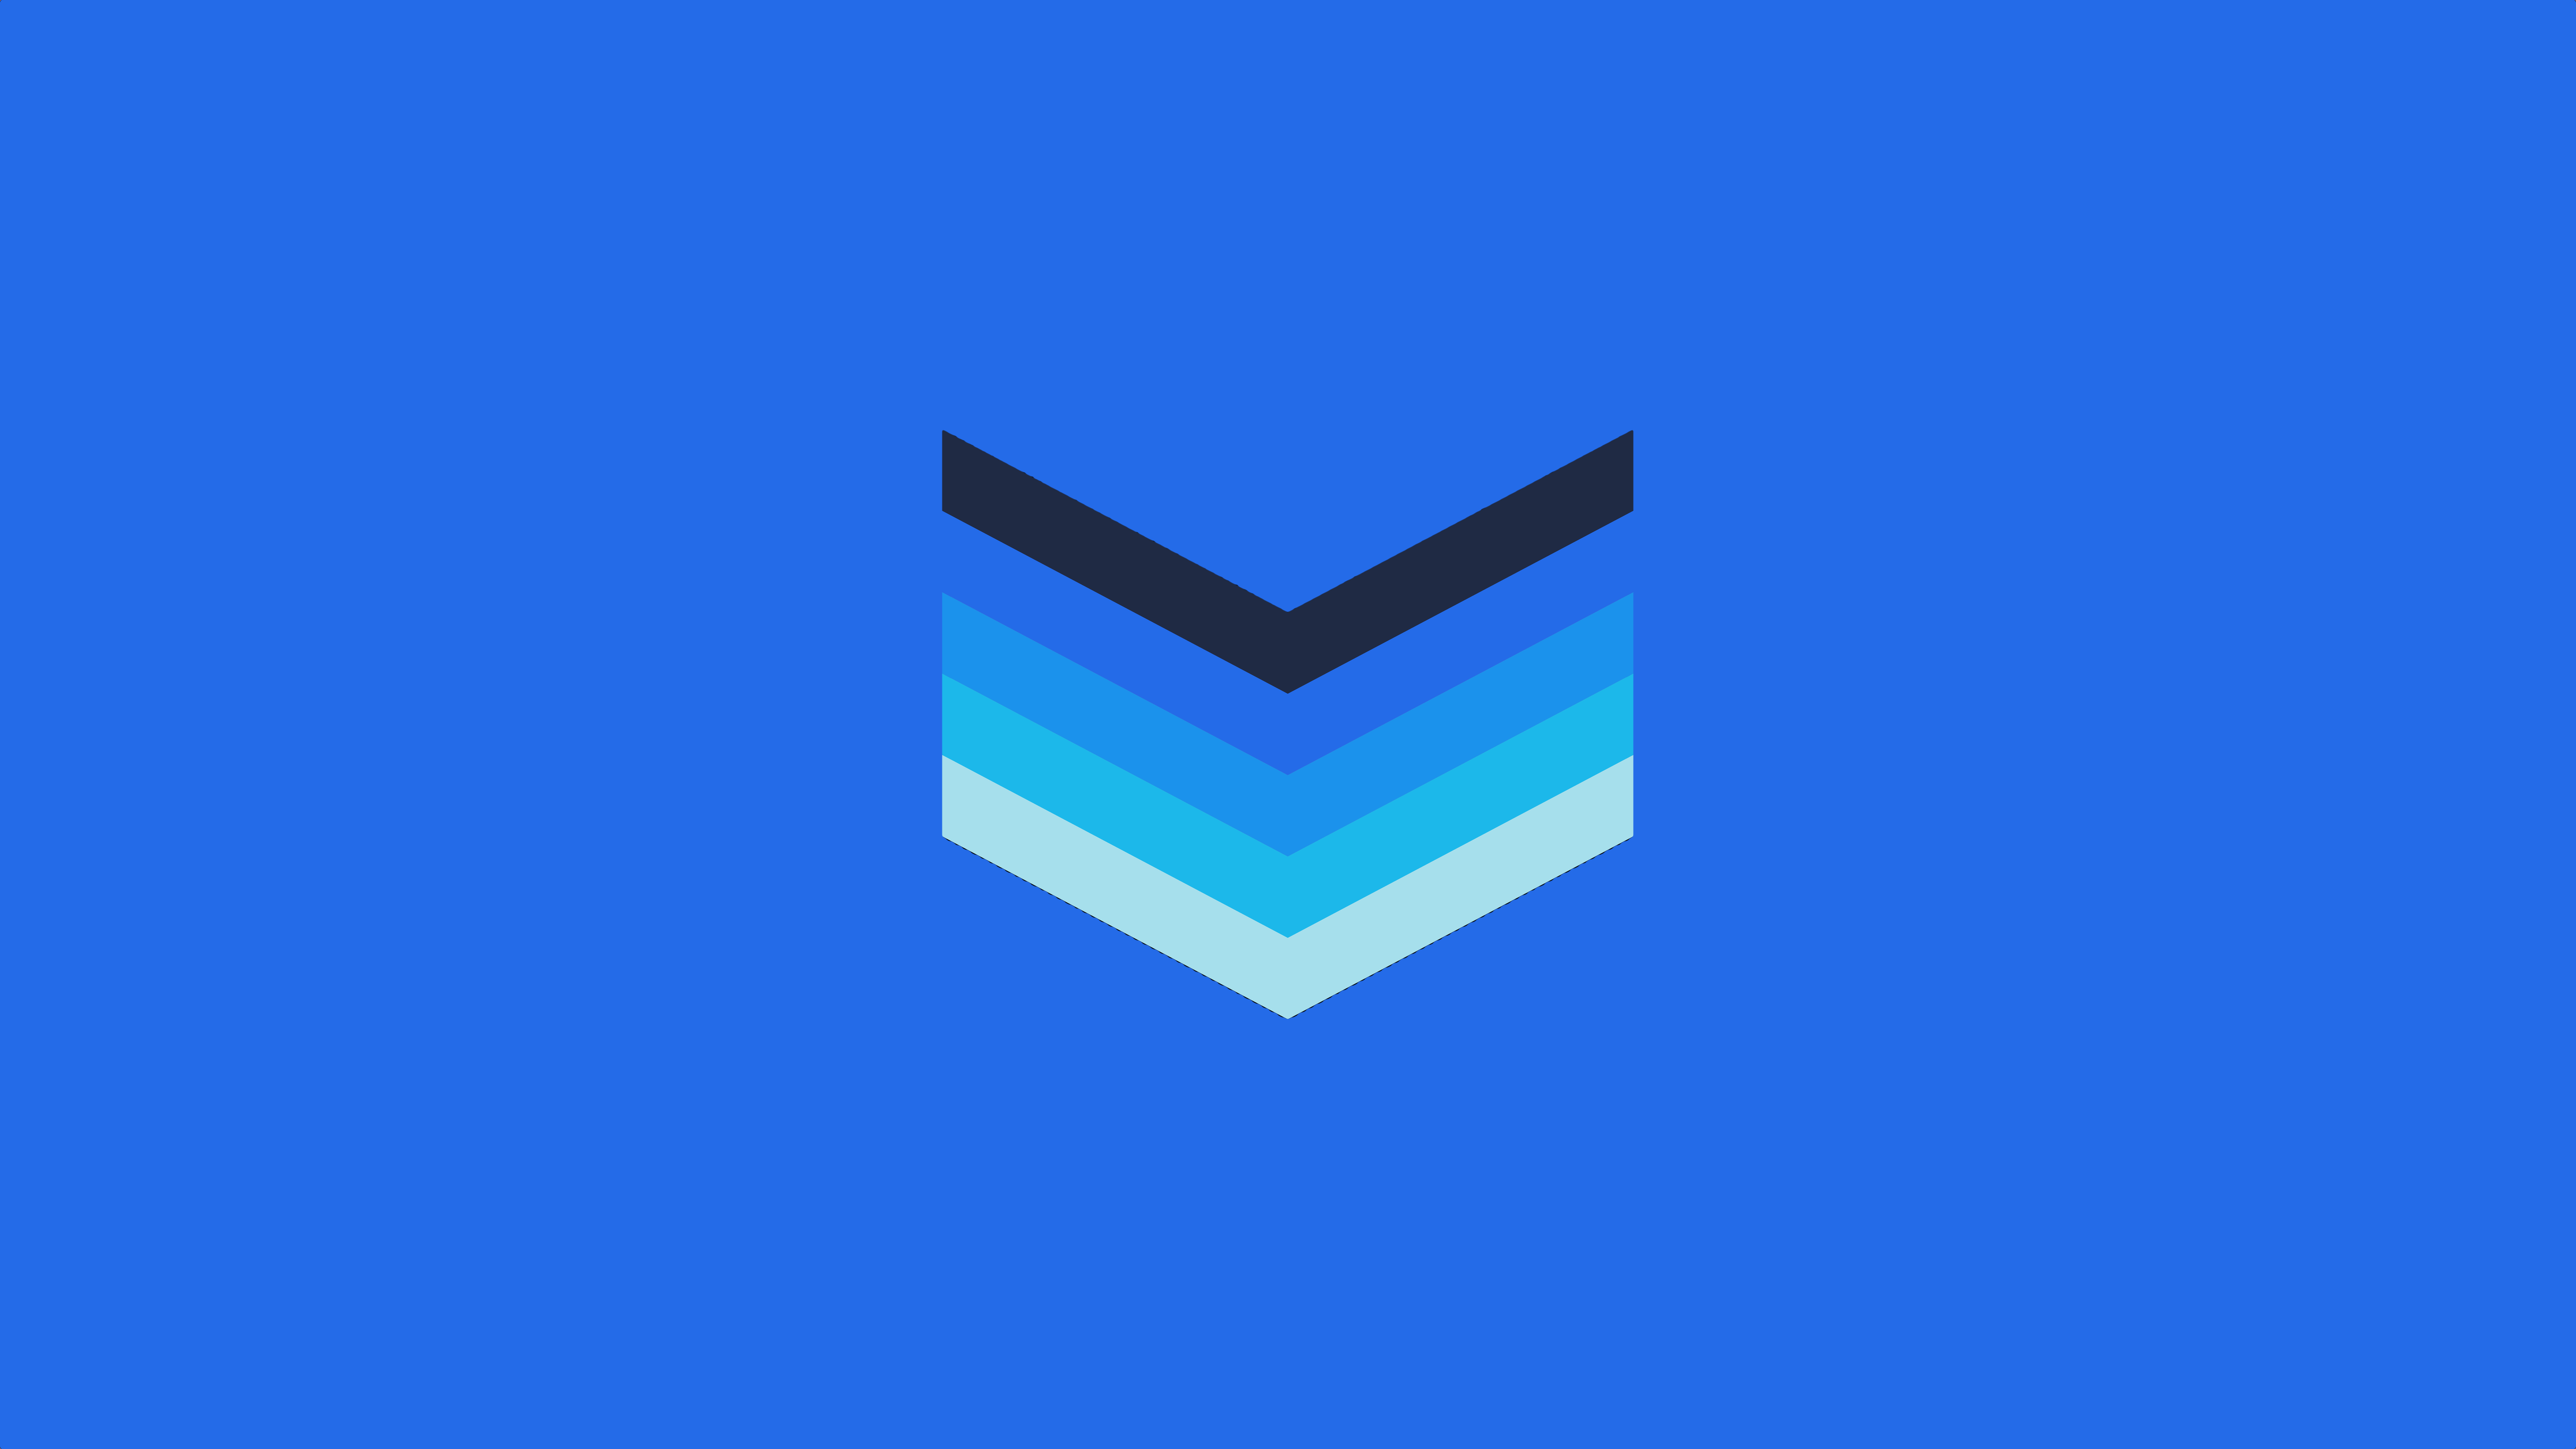 Official Mkbhd Wallpapers For Iphone Ipad Amp Desktop Vol 2